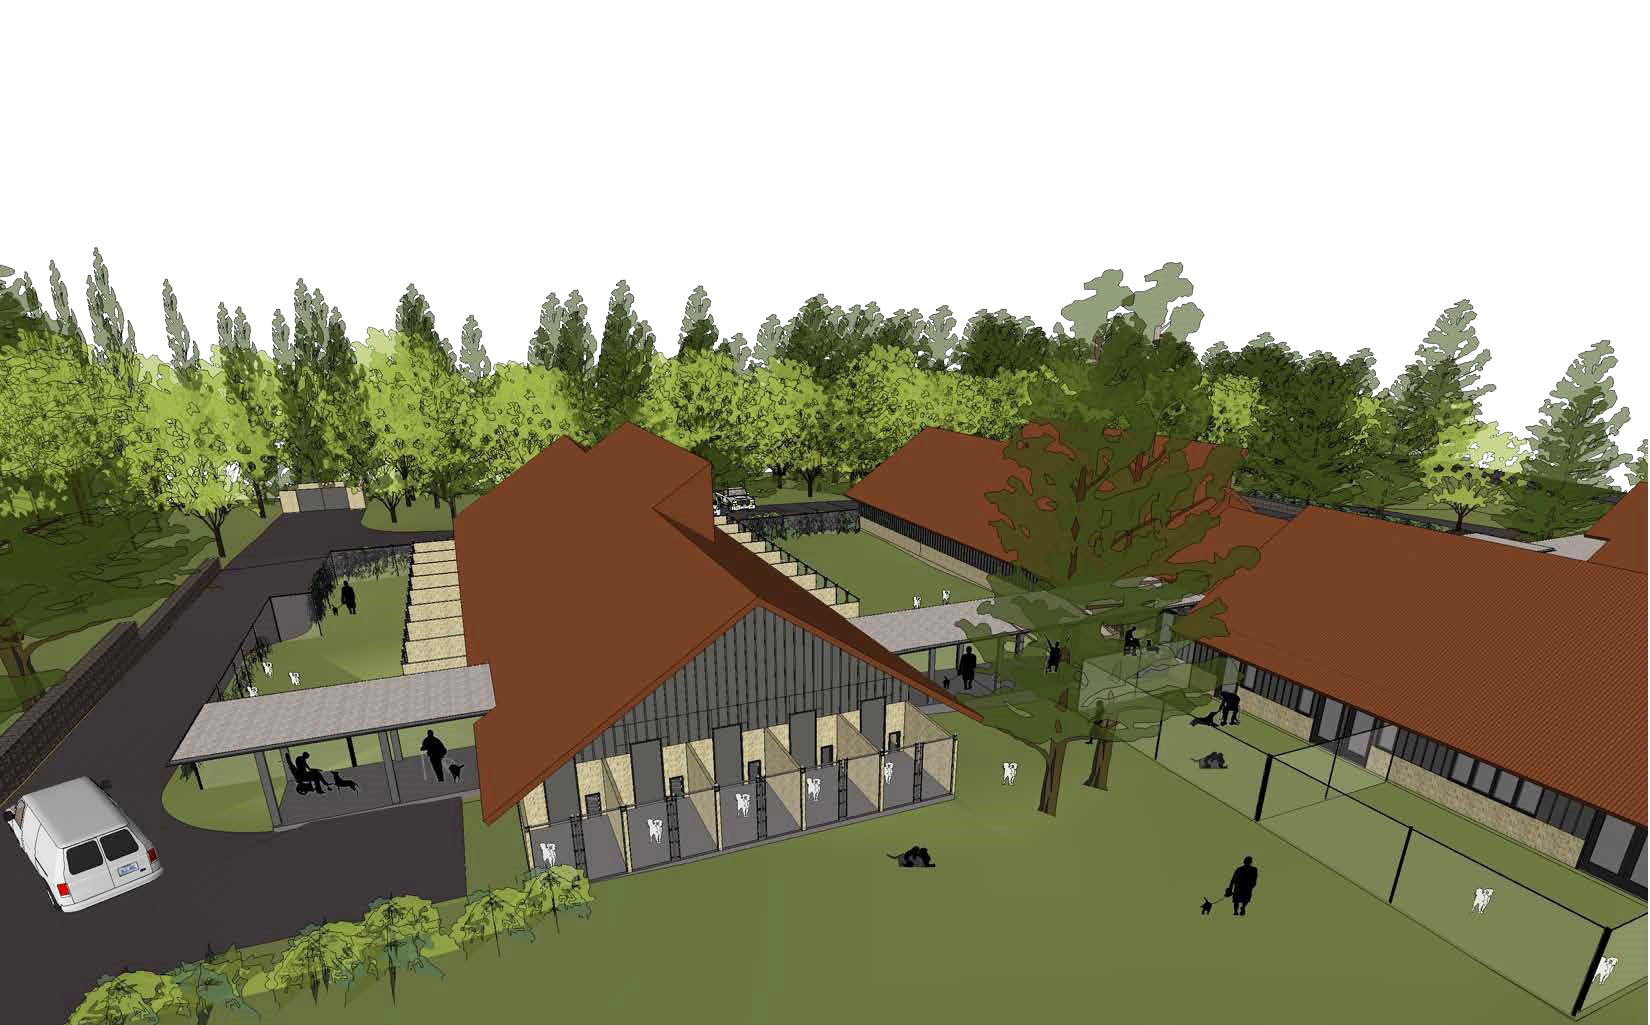 Campus site plan from south